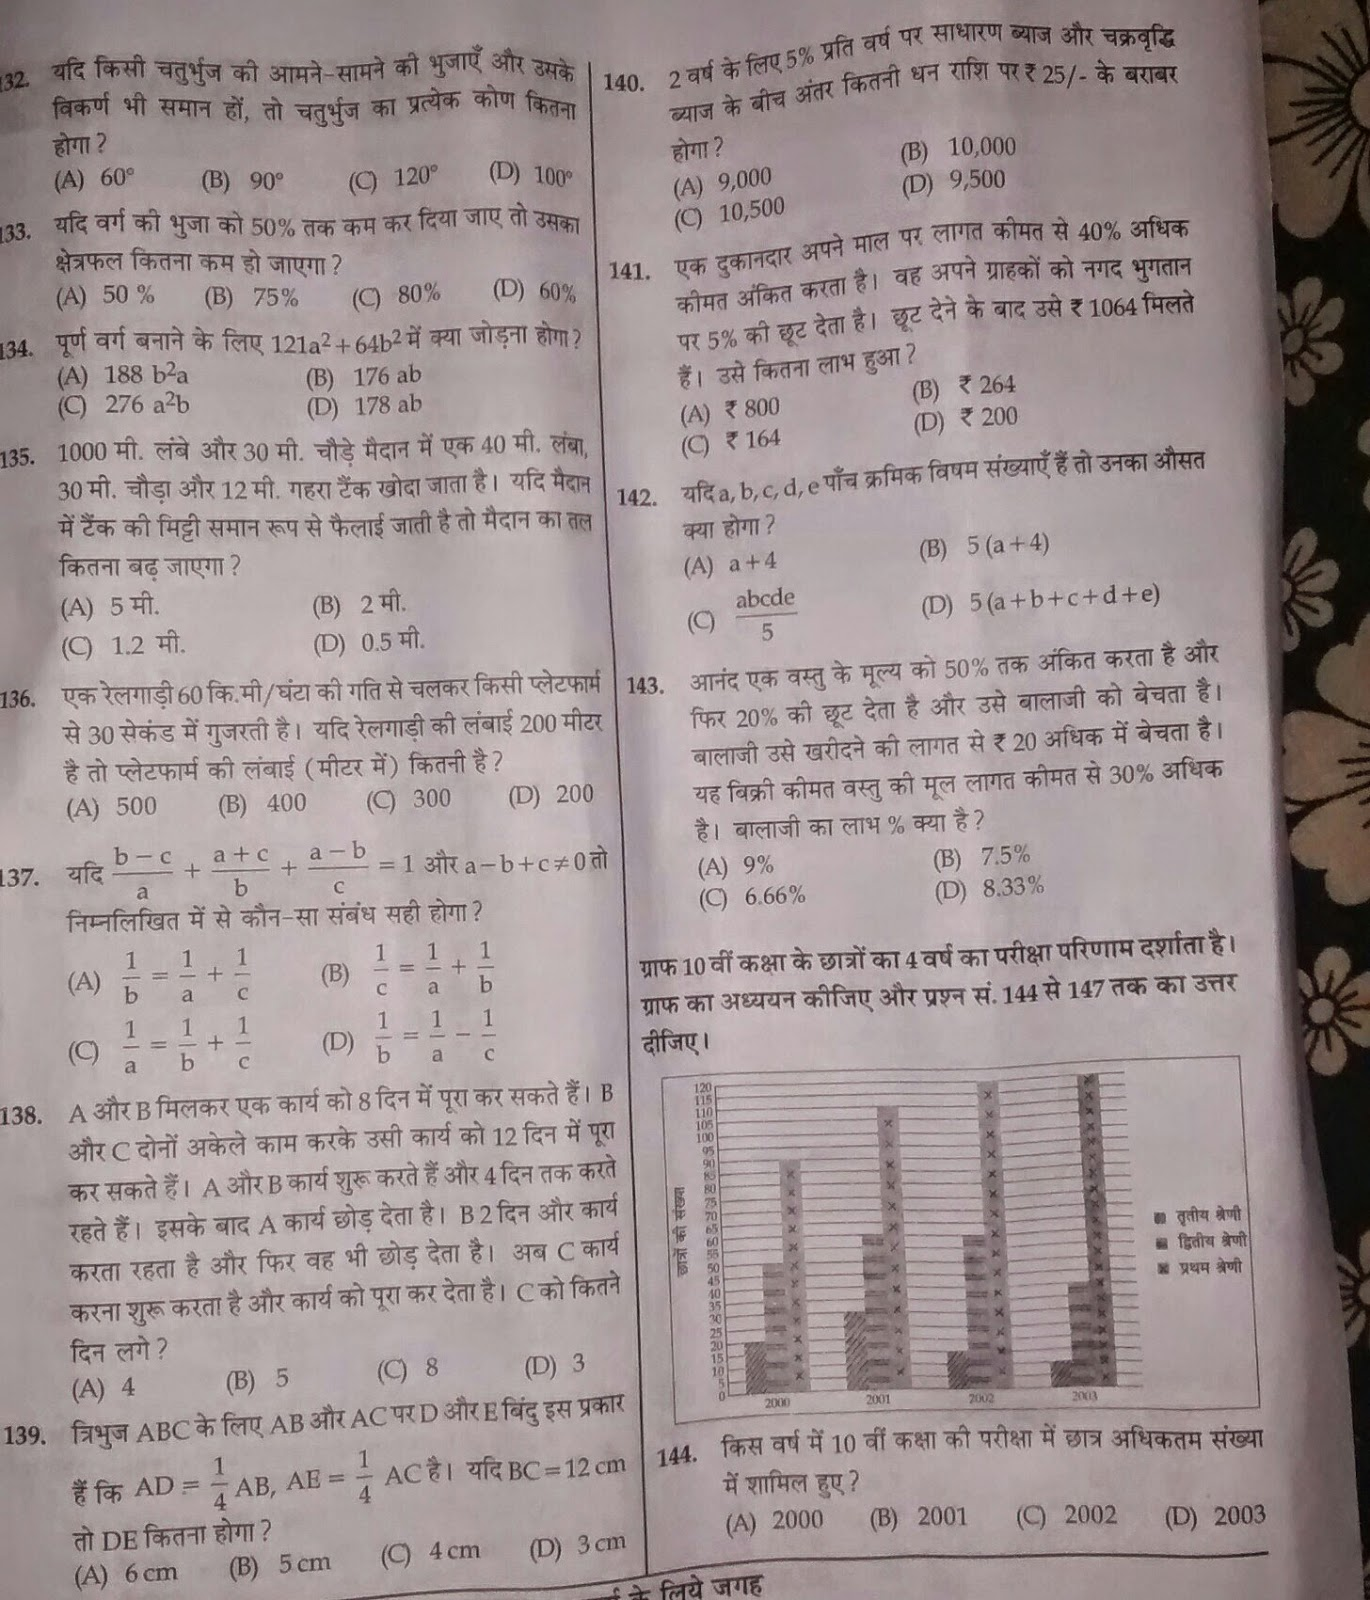 rs agarwal aptitude questions and answers with explanation pdf